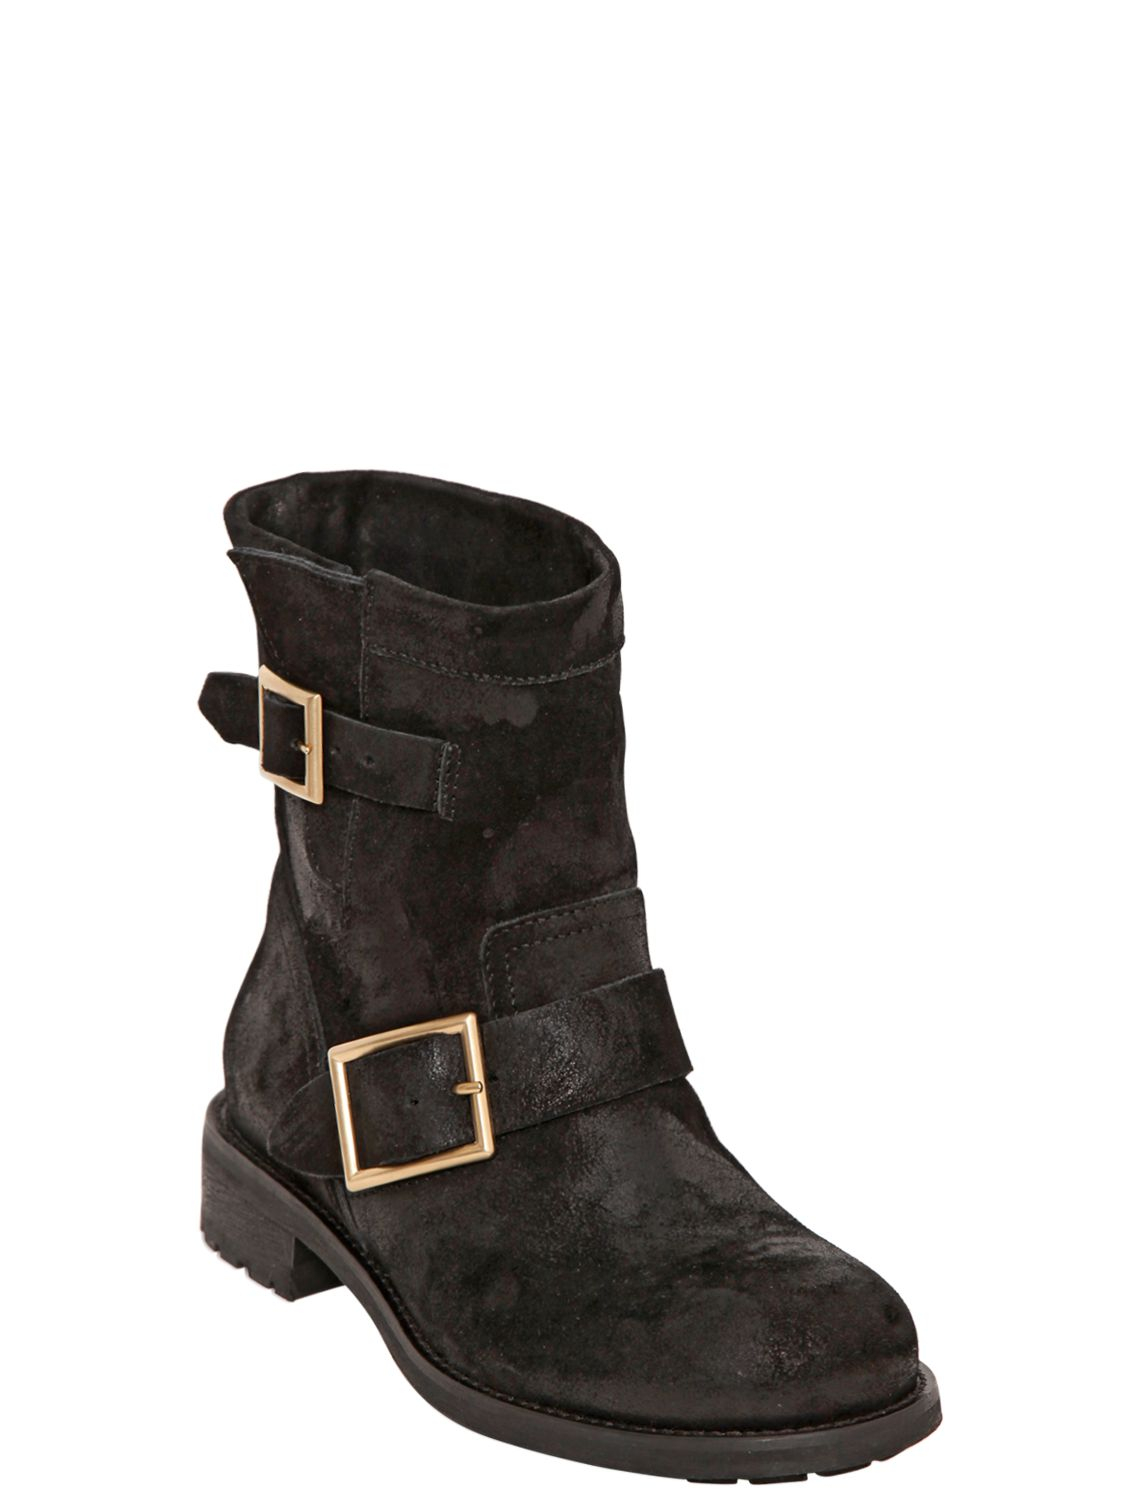 jimmy choo youth suede biker boots for sale louboutin discount